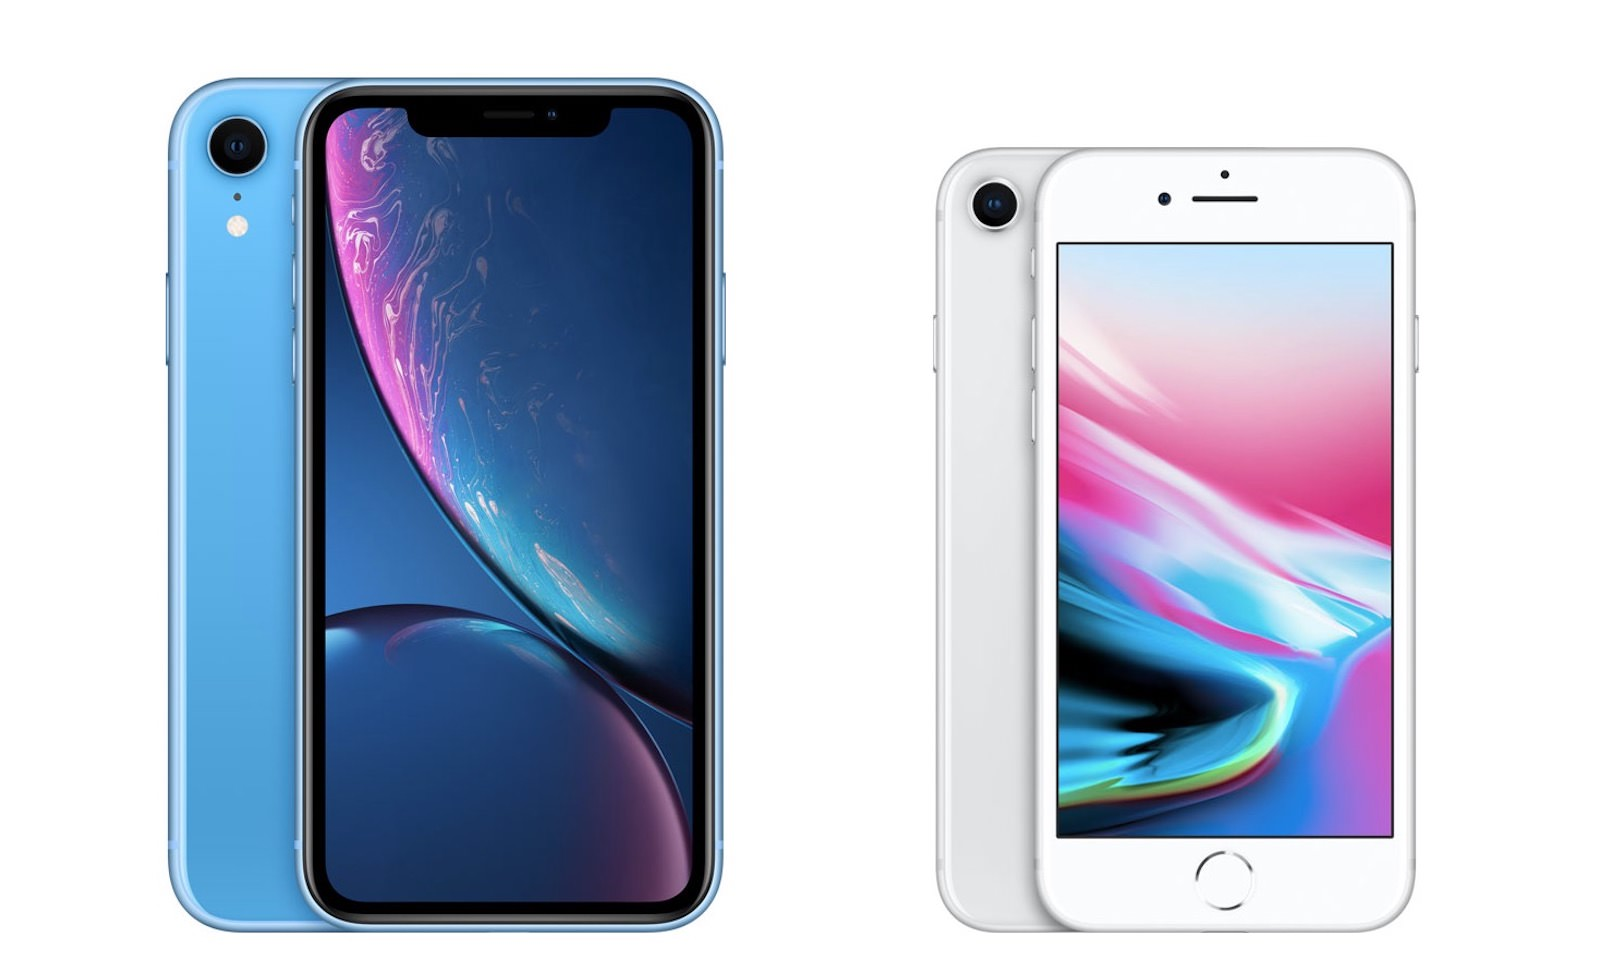 Iphone xr iphone8 comparison